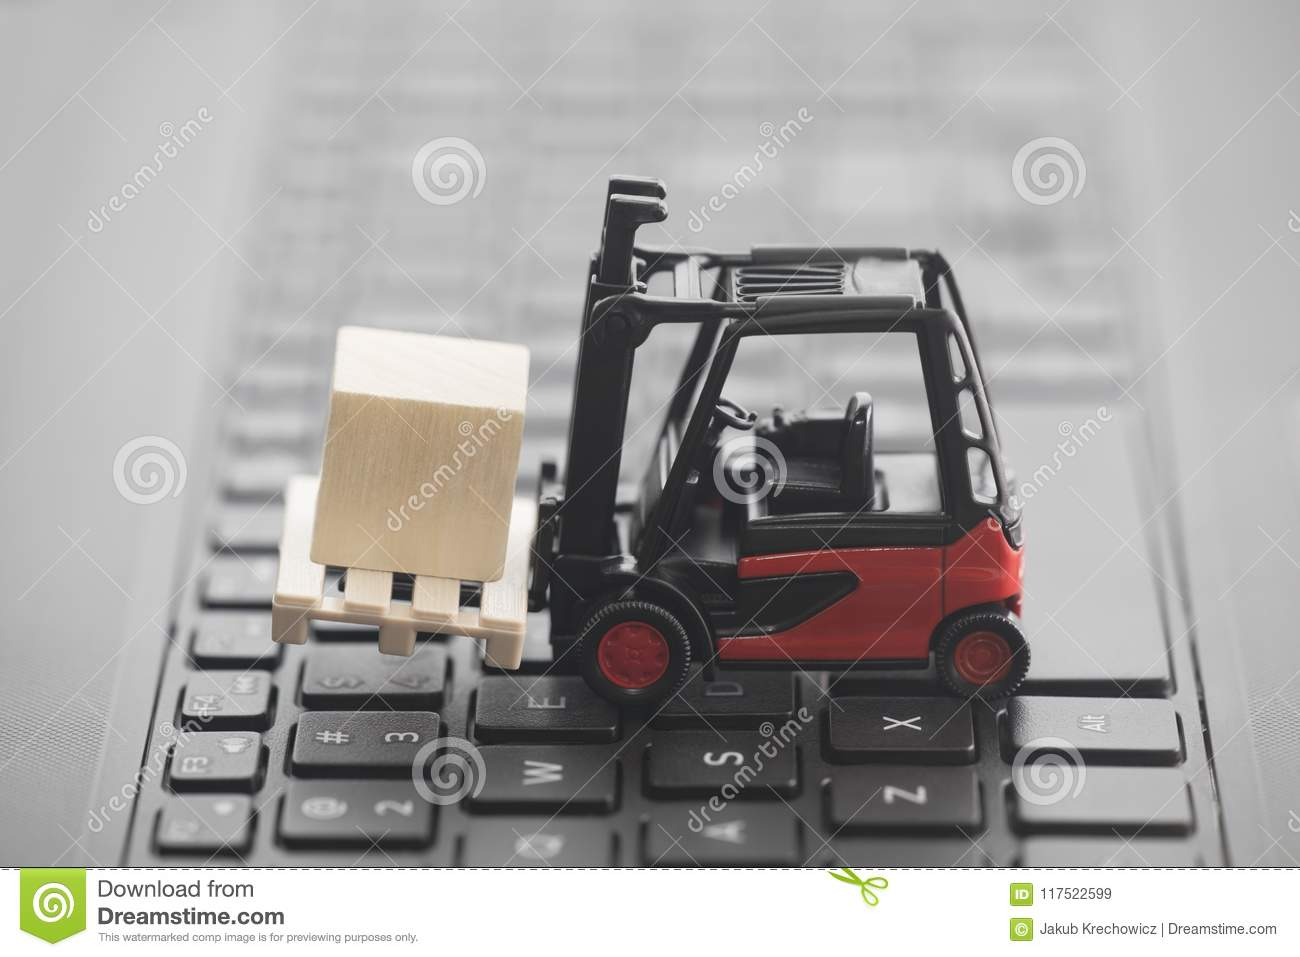 Forklift with wooden block on laptop keyboard